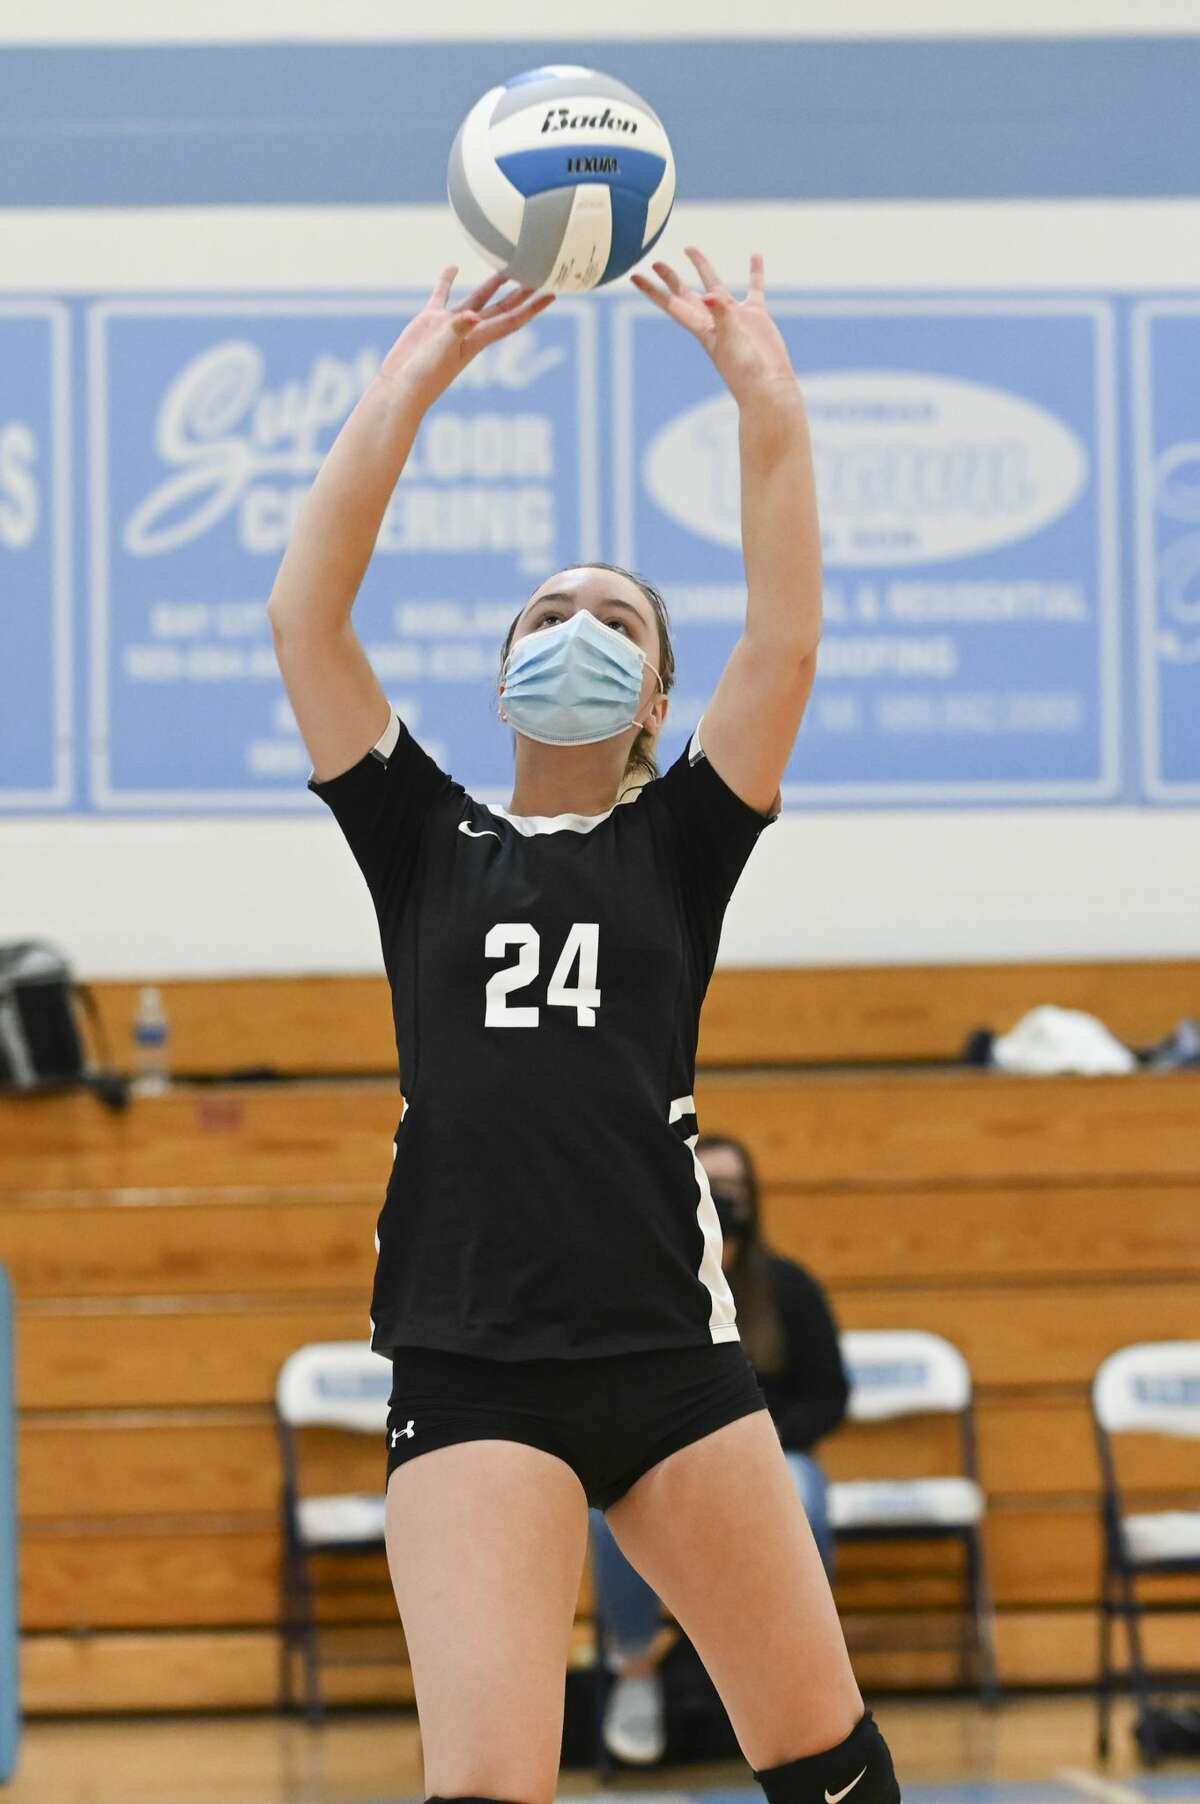 Bullock Creek's Vivian Freeland sets the ball during a district final against Garber Saturday, Nov. 7, 2020 at Garber High School. (Adam Ferman/for the Daily News)